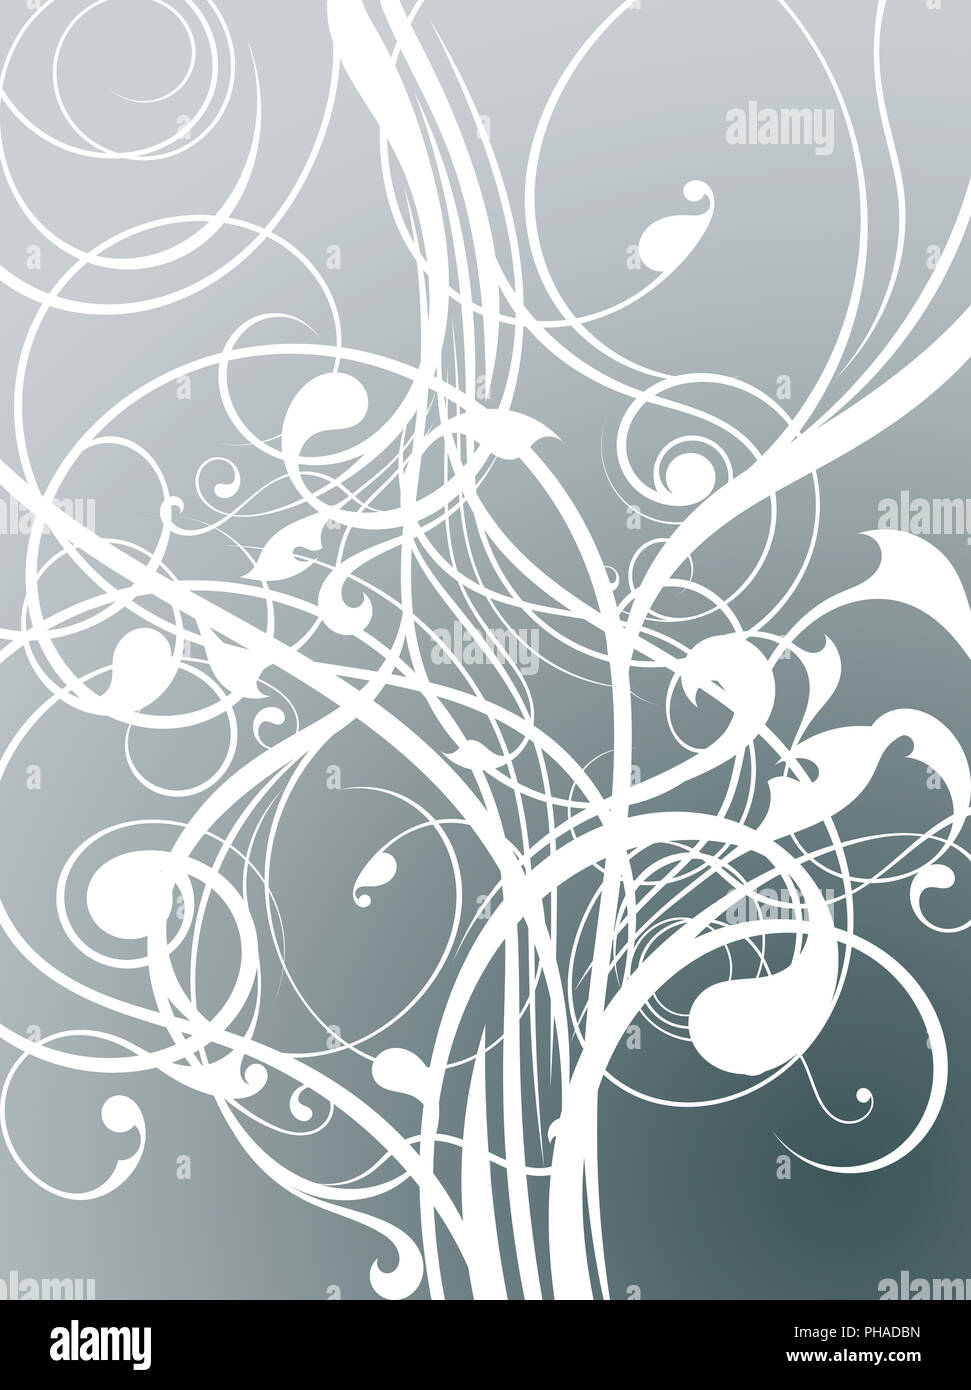 nature abstract floral swirls - Stock Image